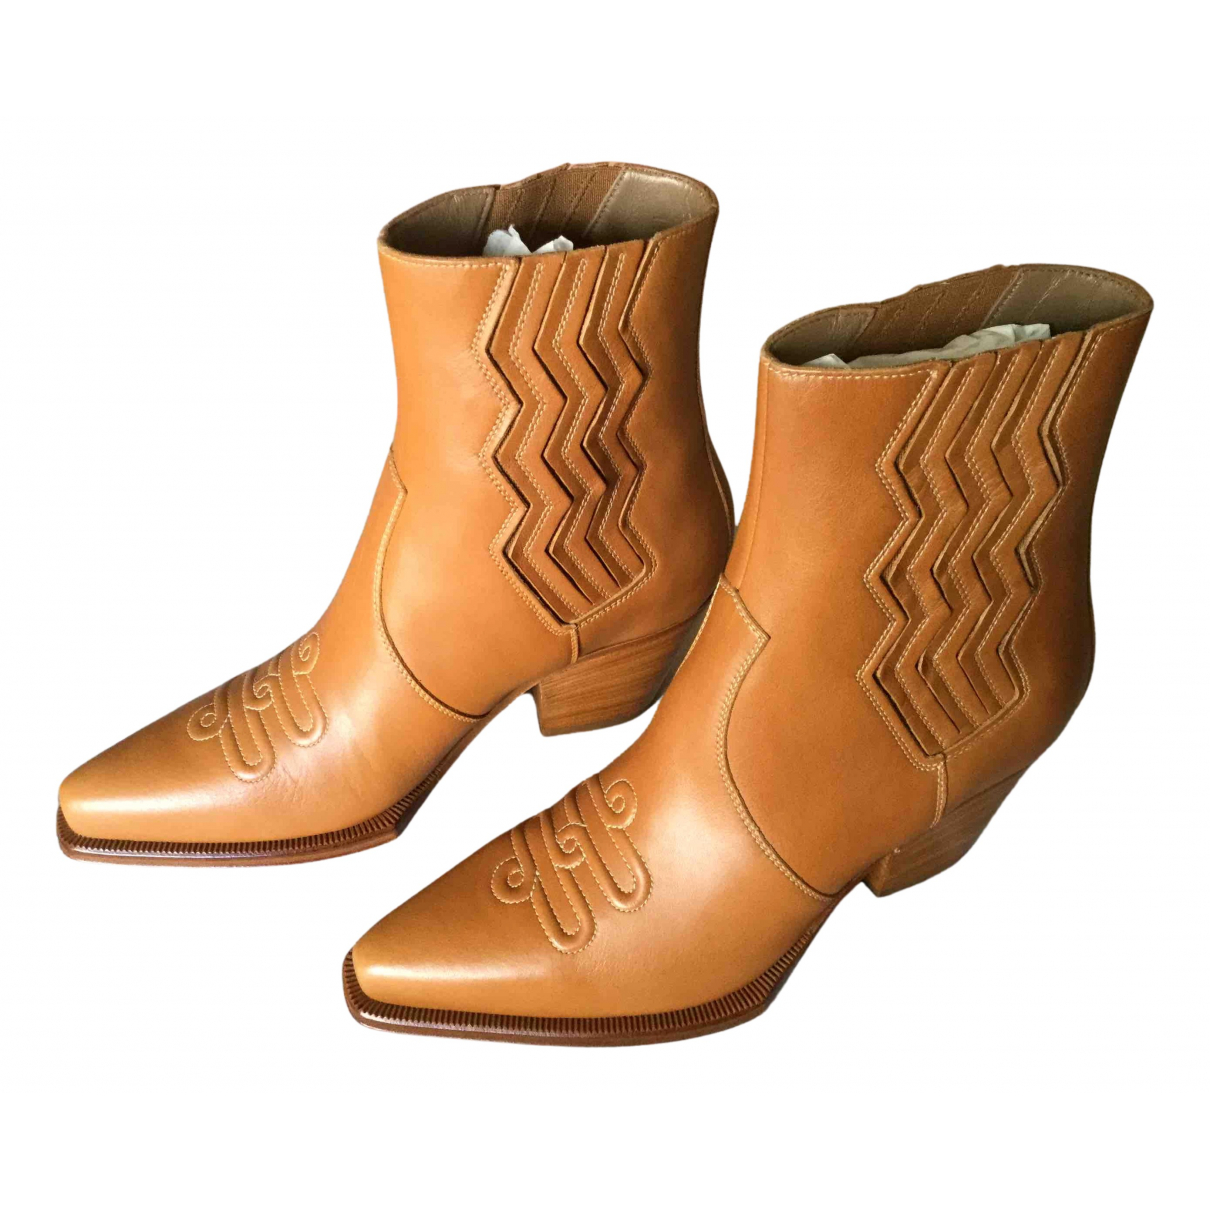 Hermès N Camel Leather Ankle boots for Women 37 EU